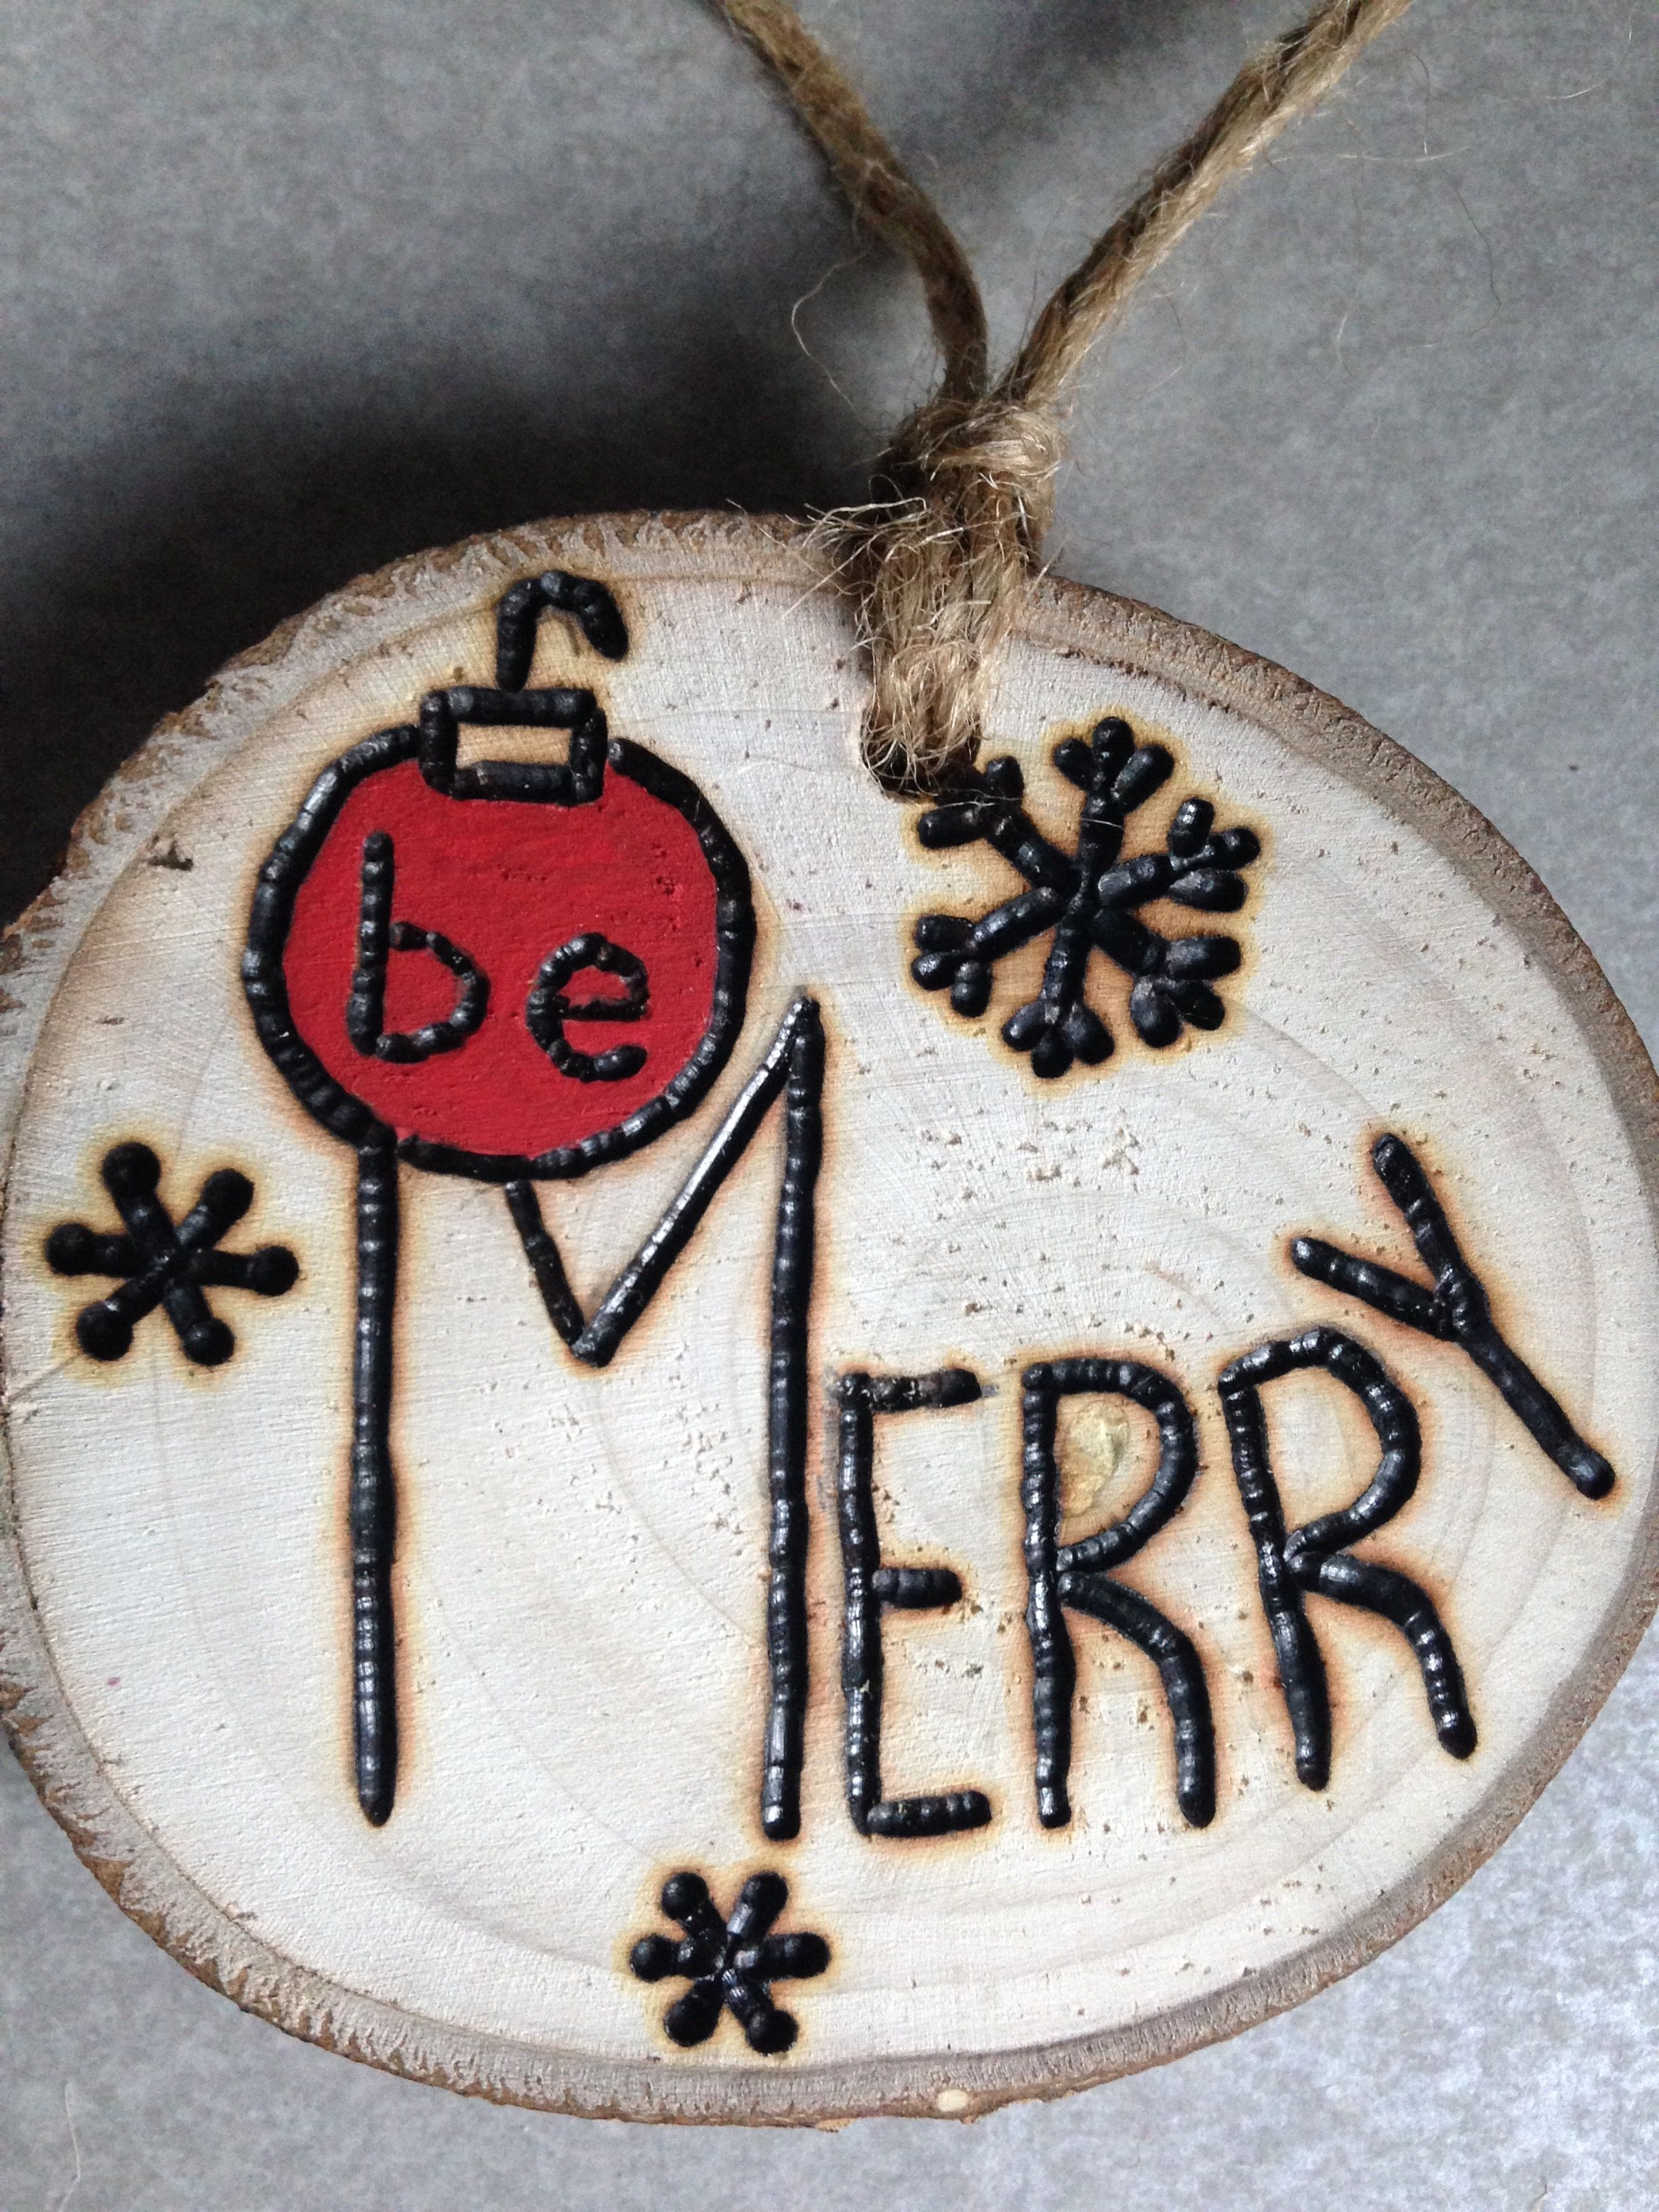 Rustic Hand Painted Be Merry Wood Burned Christmas Ornament Natural Wood Wooden Christmas Ornaments Christmas Ornaments Homemade Christmas Ornaments